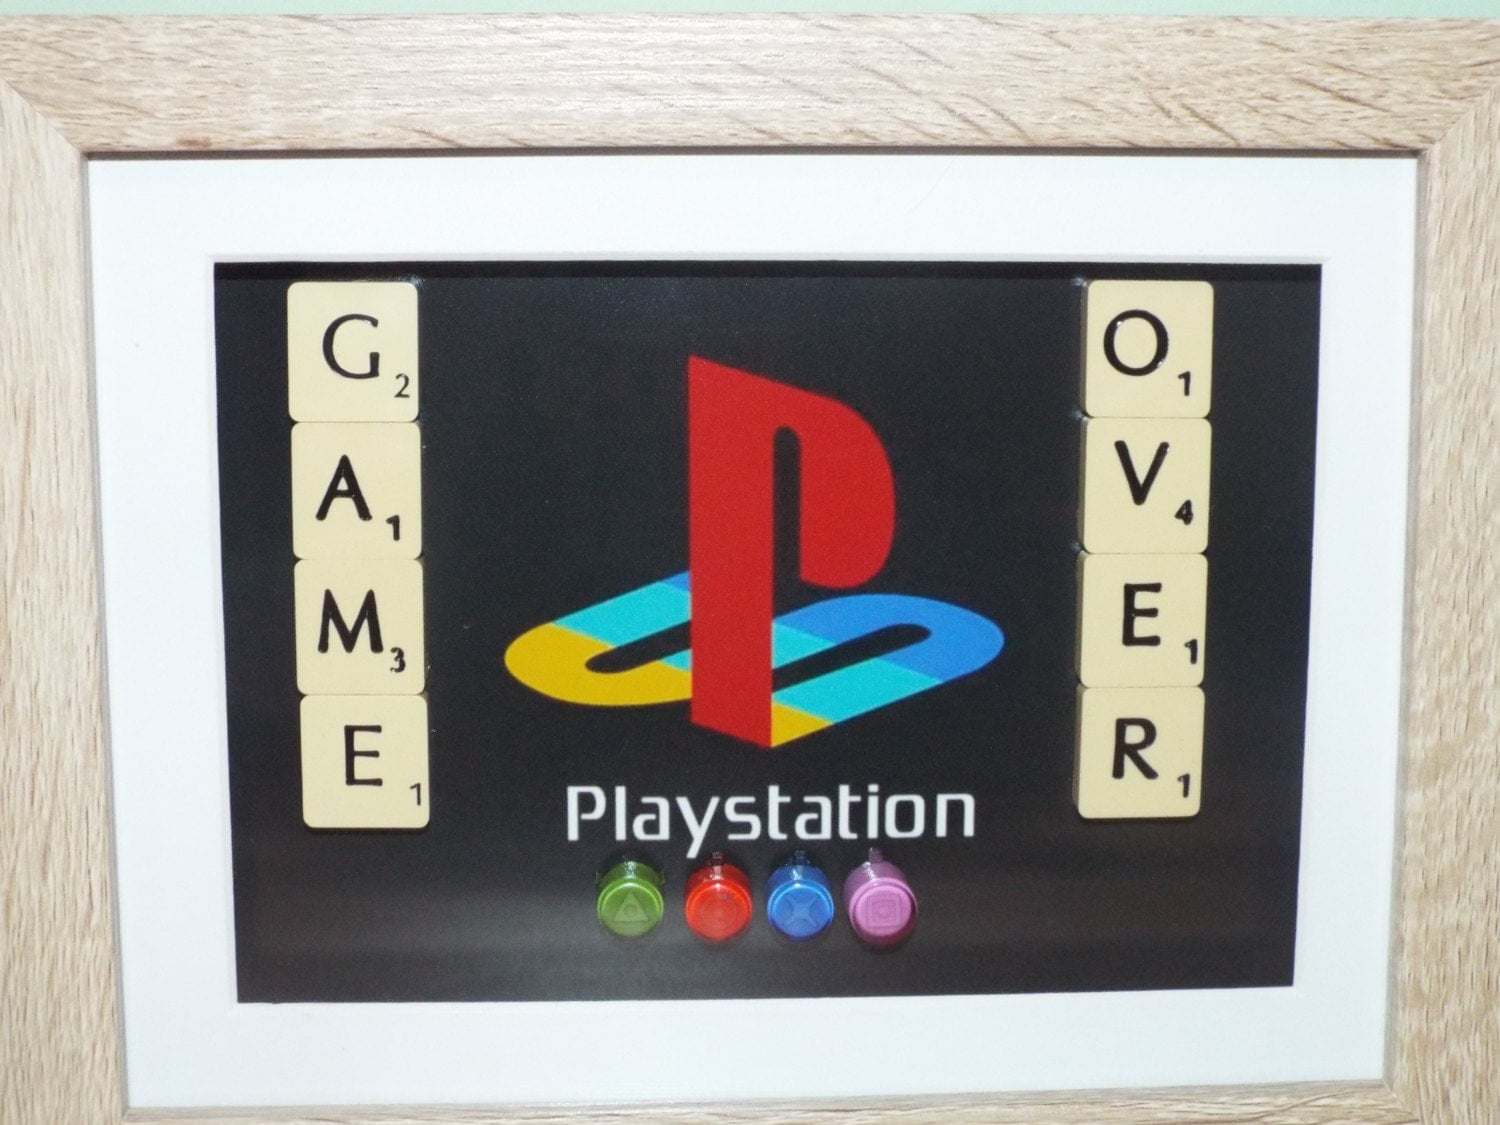 Playstation X Square Circle Triangle With Scrabble